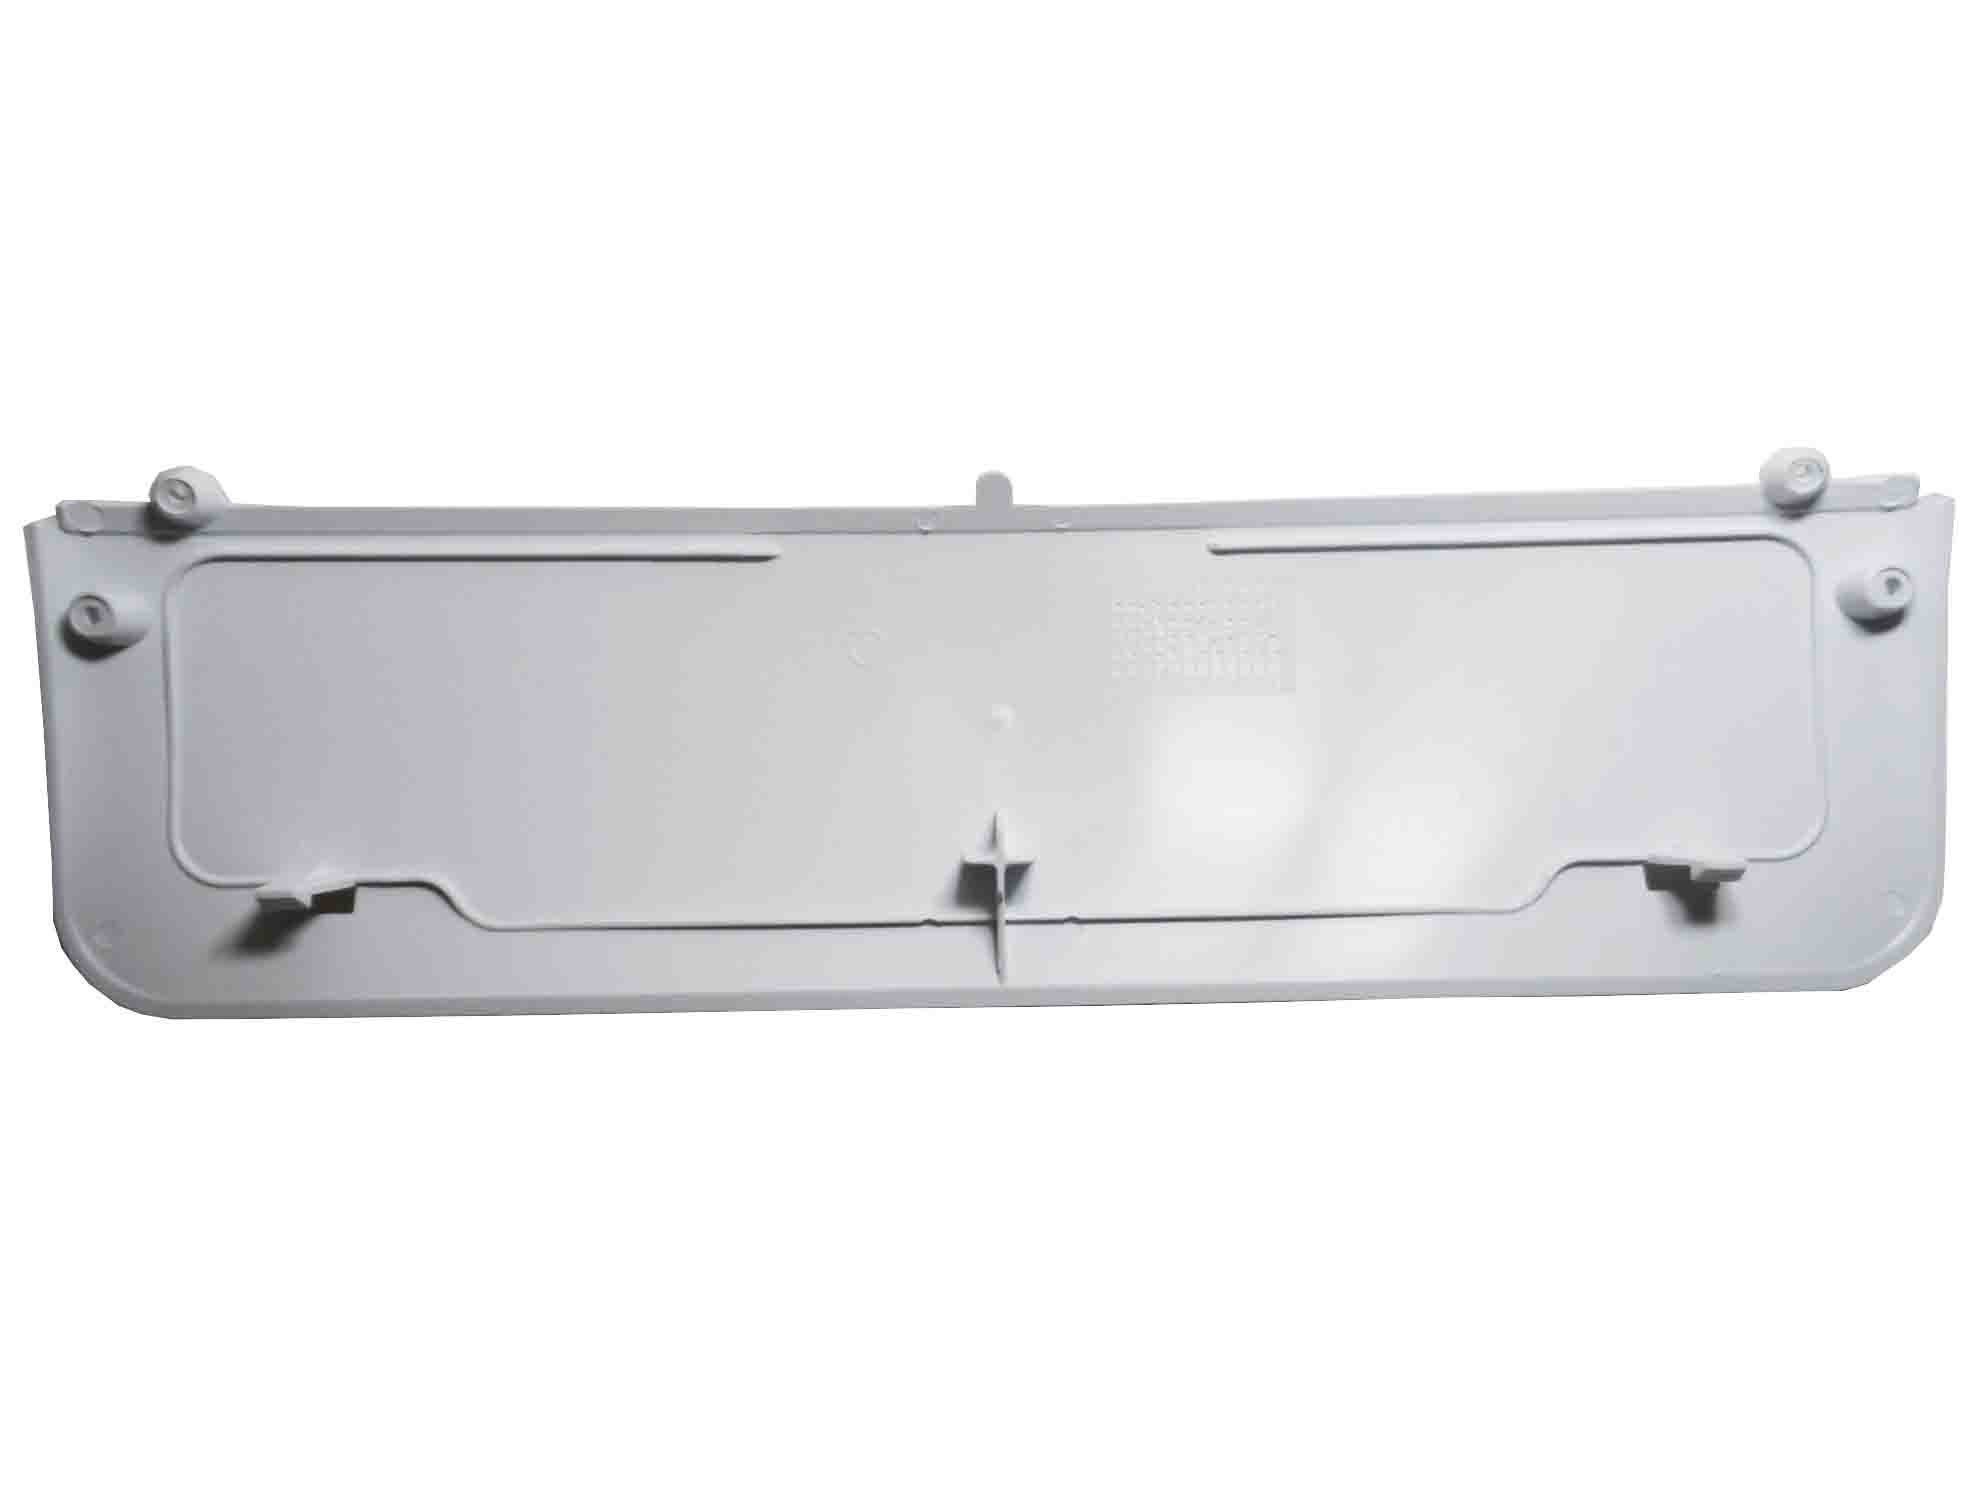 TAMPA PAINEL LAVADORA ELECTROLUX 67400375